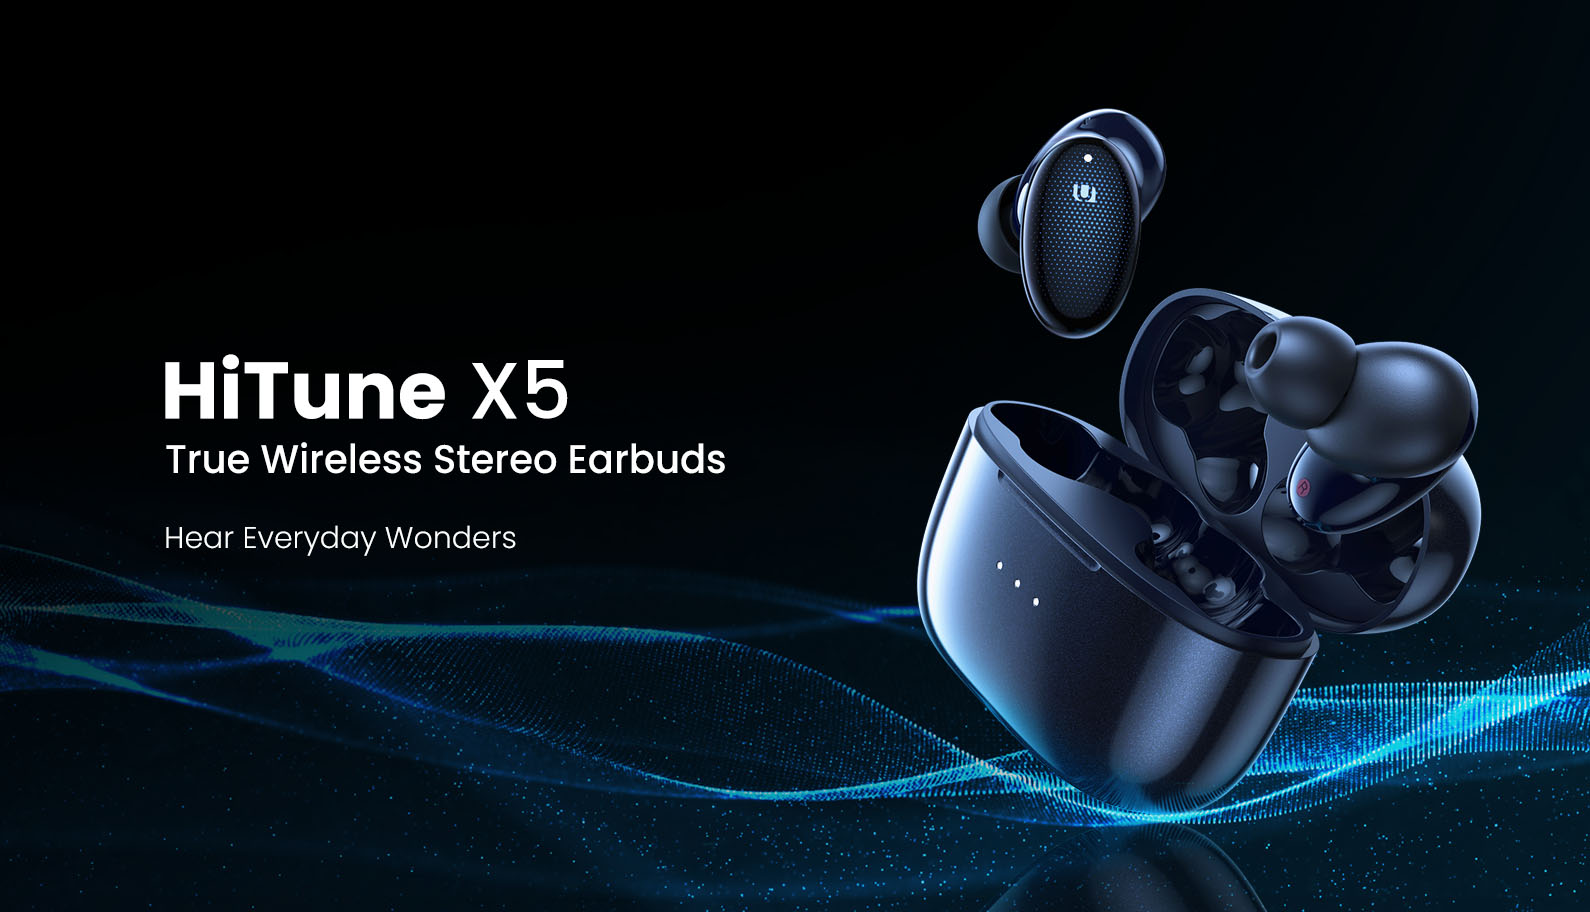 Exclusive: UGREEN HiTune X5 Premium Earbuds 30% Off Introductory Offer